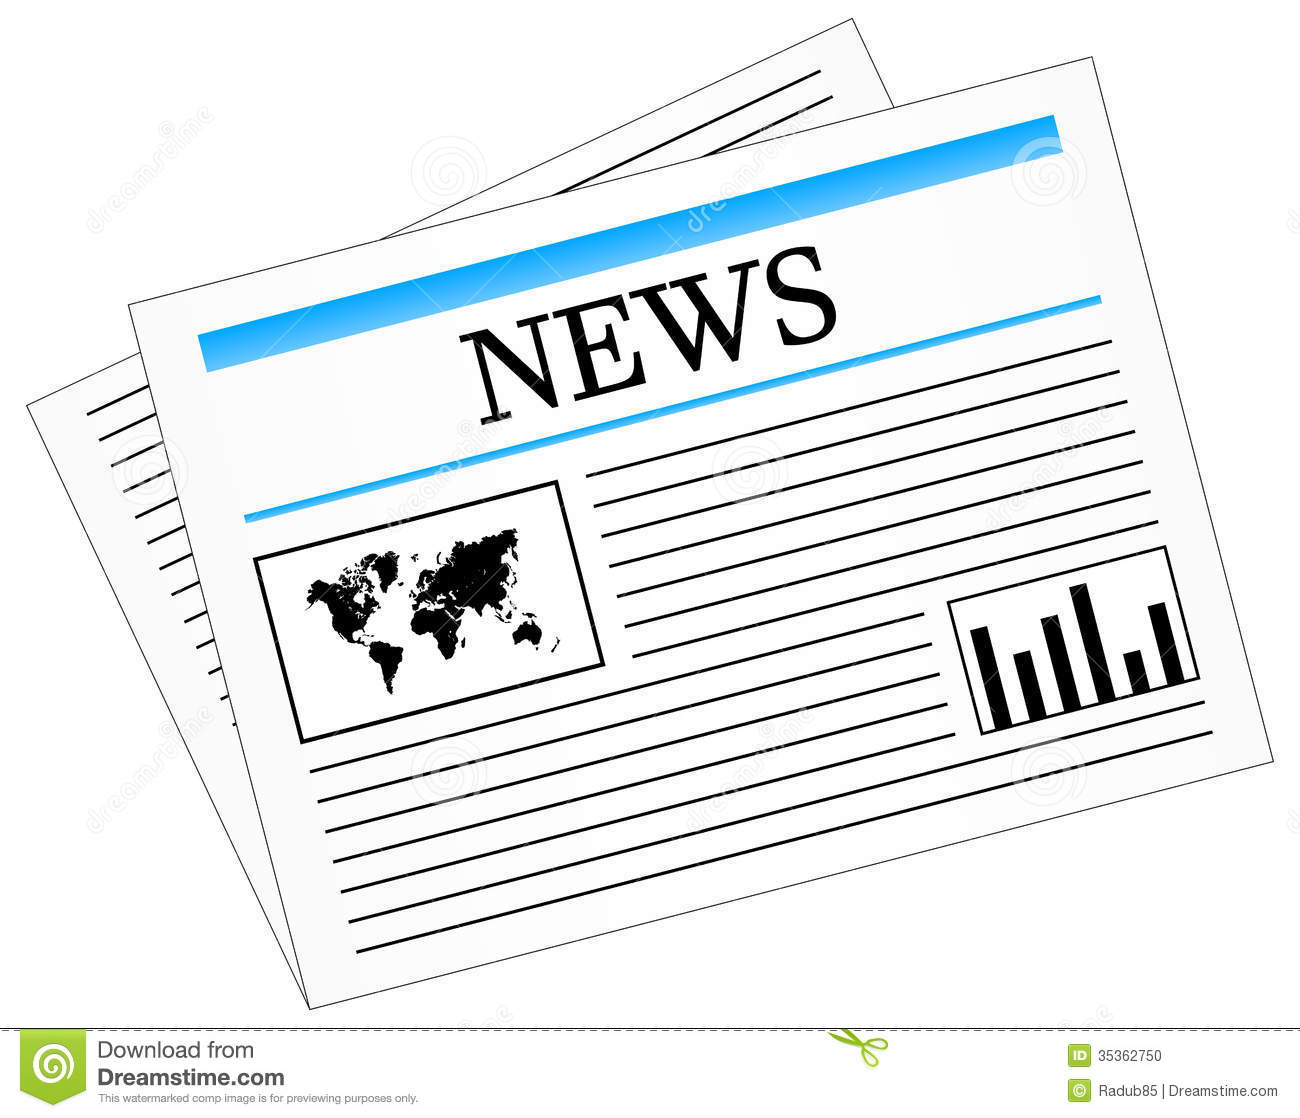 News: Daily News Newspaper Press Stock Vector. Image Of